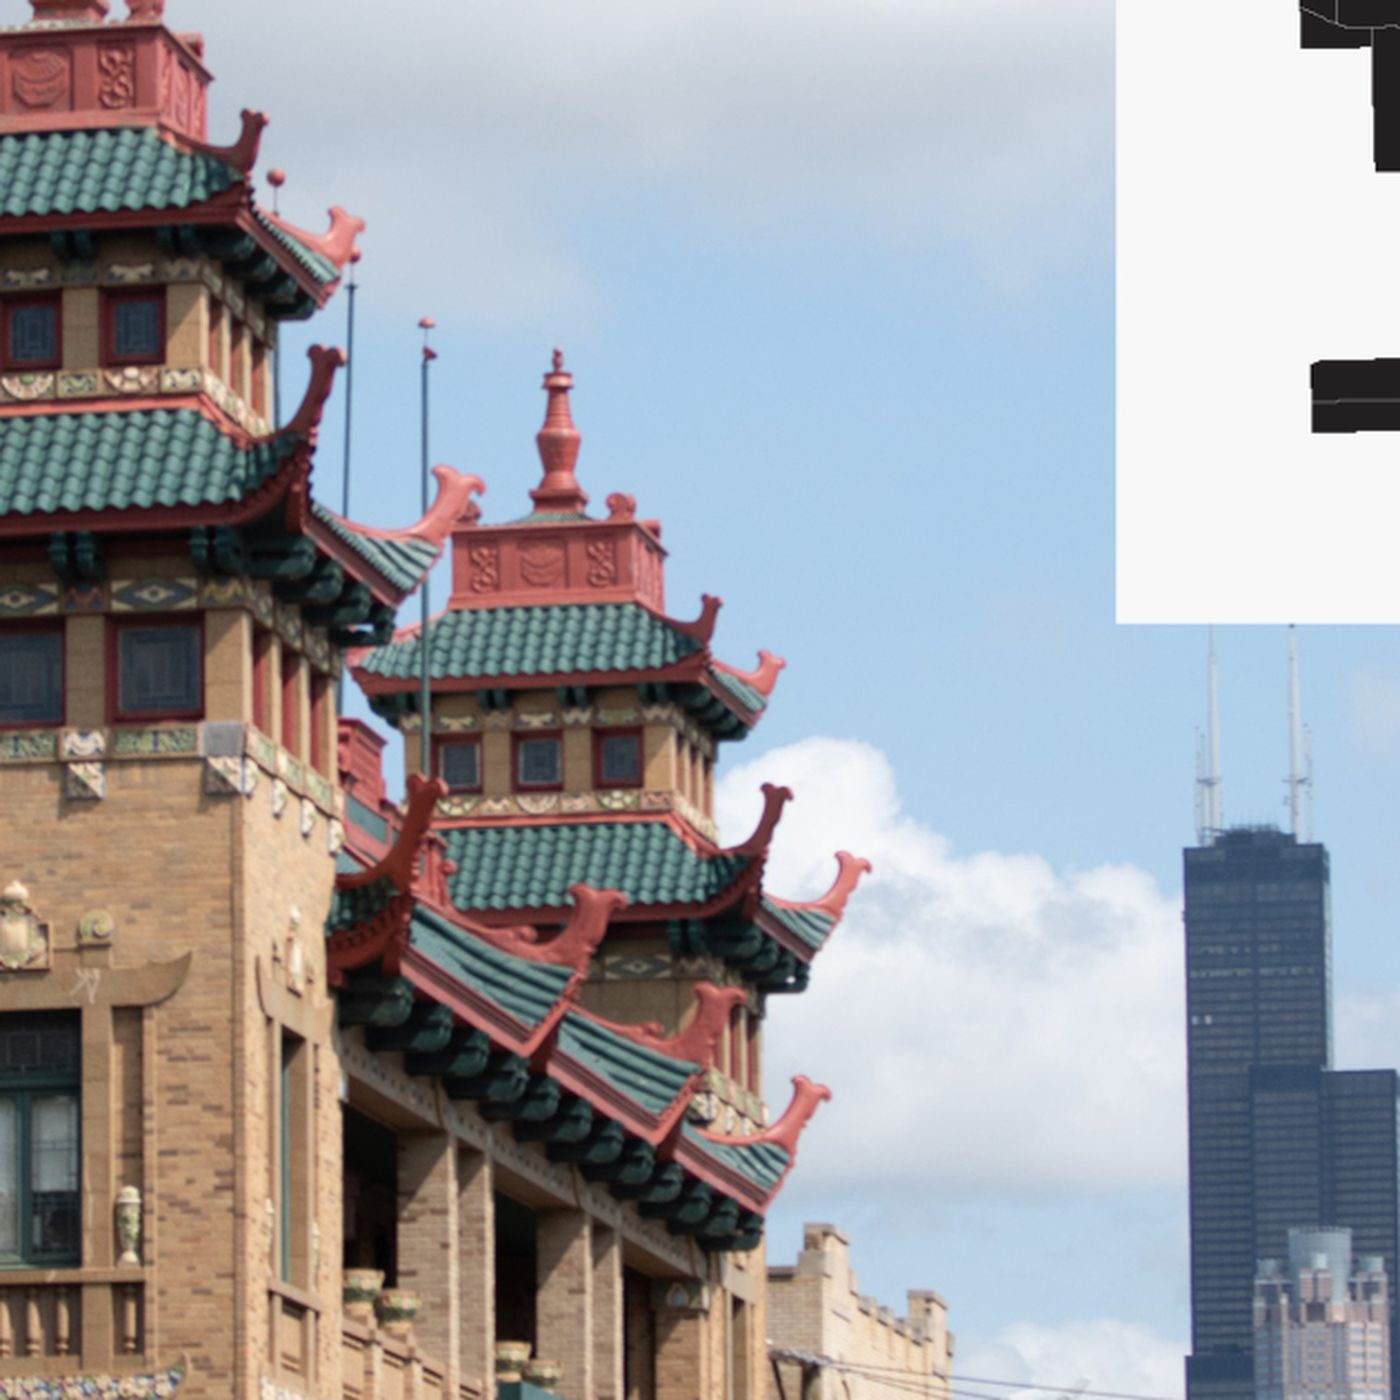 2bc3bc3cd The Grid: Chinatown guide: Where to eat, shop and things to do - Chicago  Sun-Times